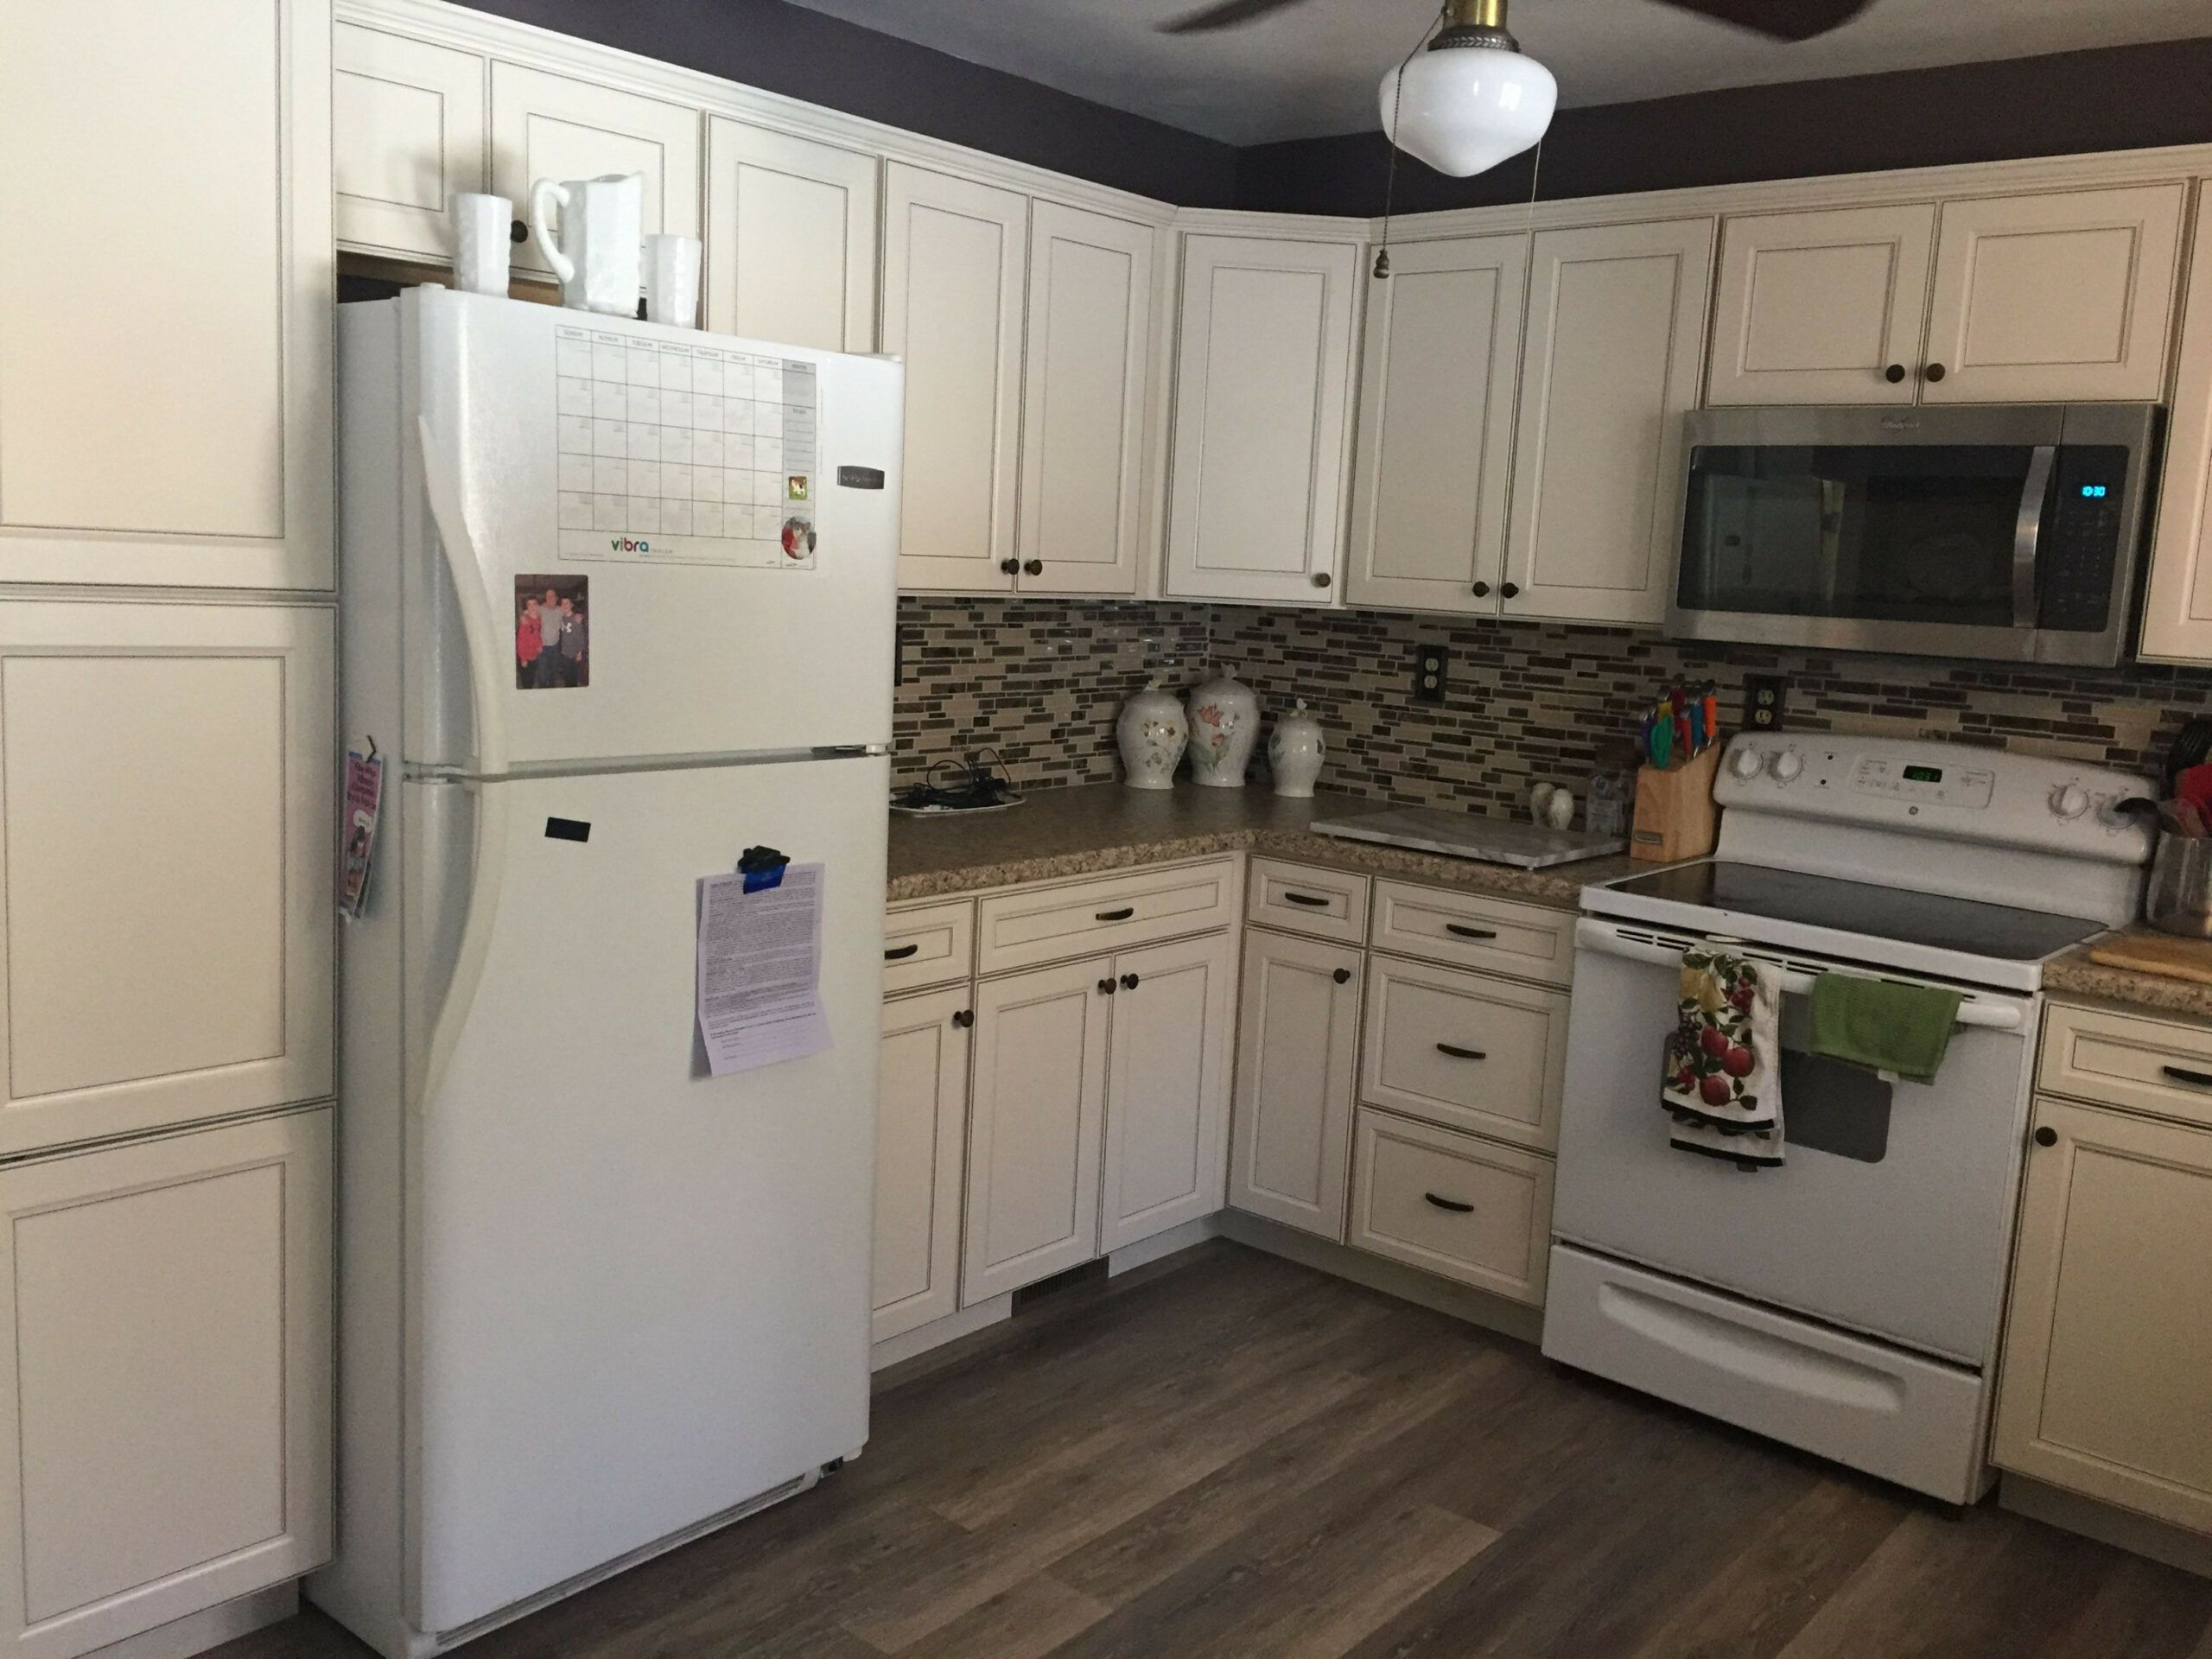 15 Custom Kitchen Cupboards Lowes August 2 2018 Kevin Brasler Boutique About Afore Affairs Countertops Kristi King Bedroom Cabinets Check More At Ht Di 2020